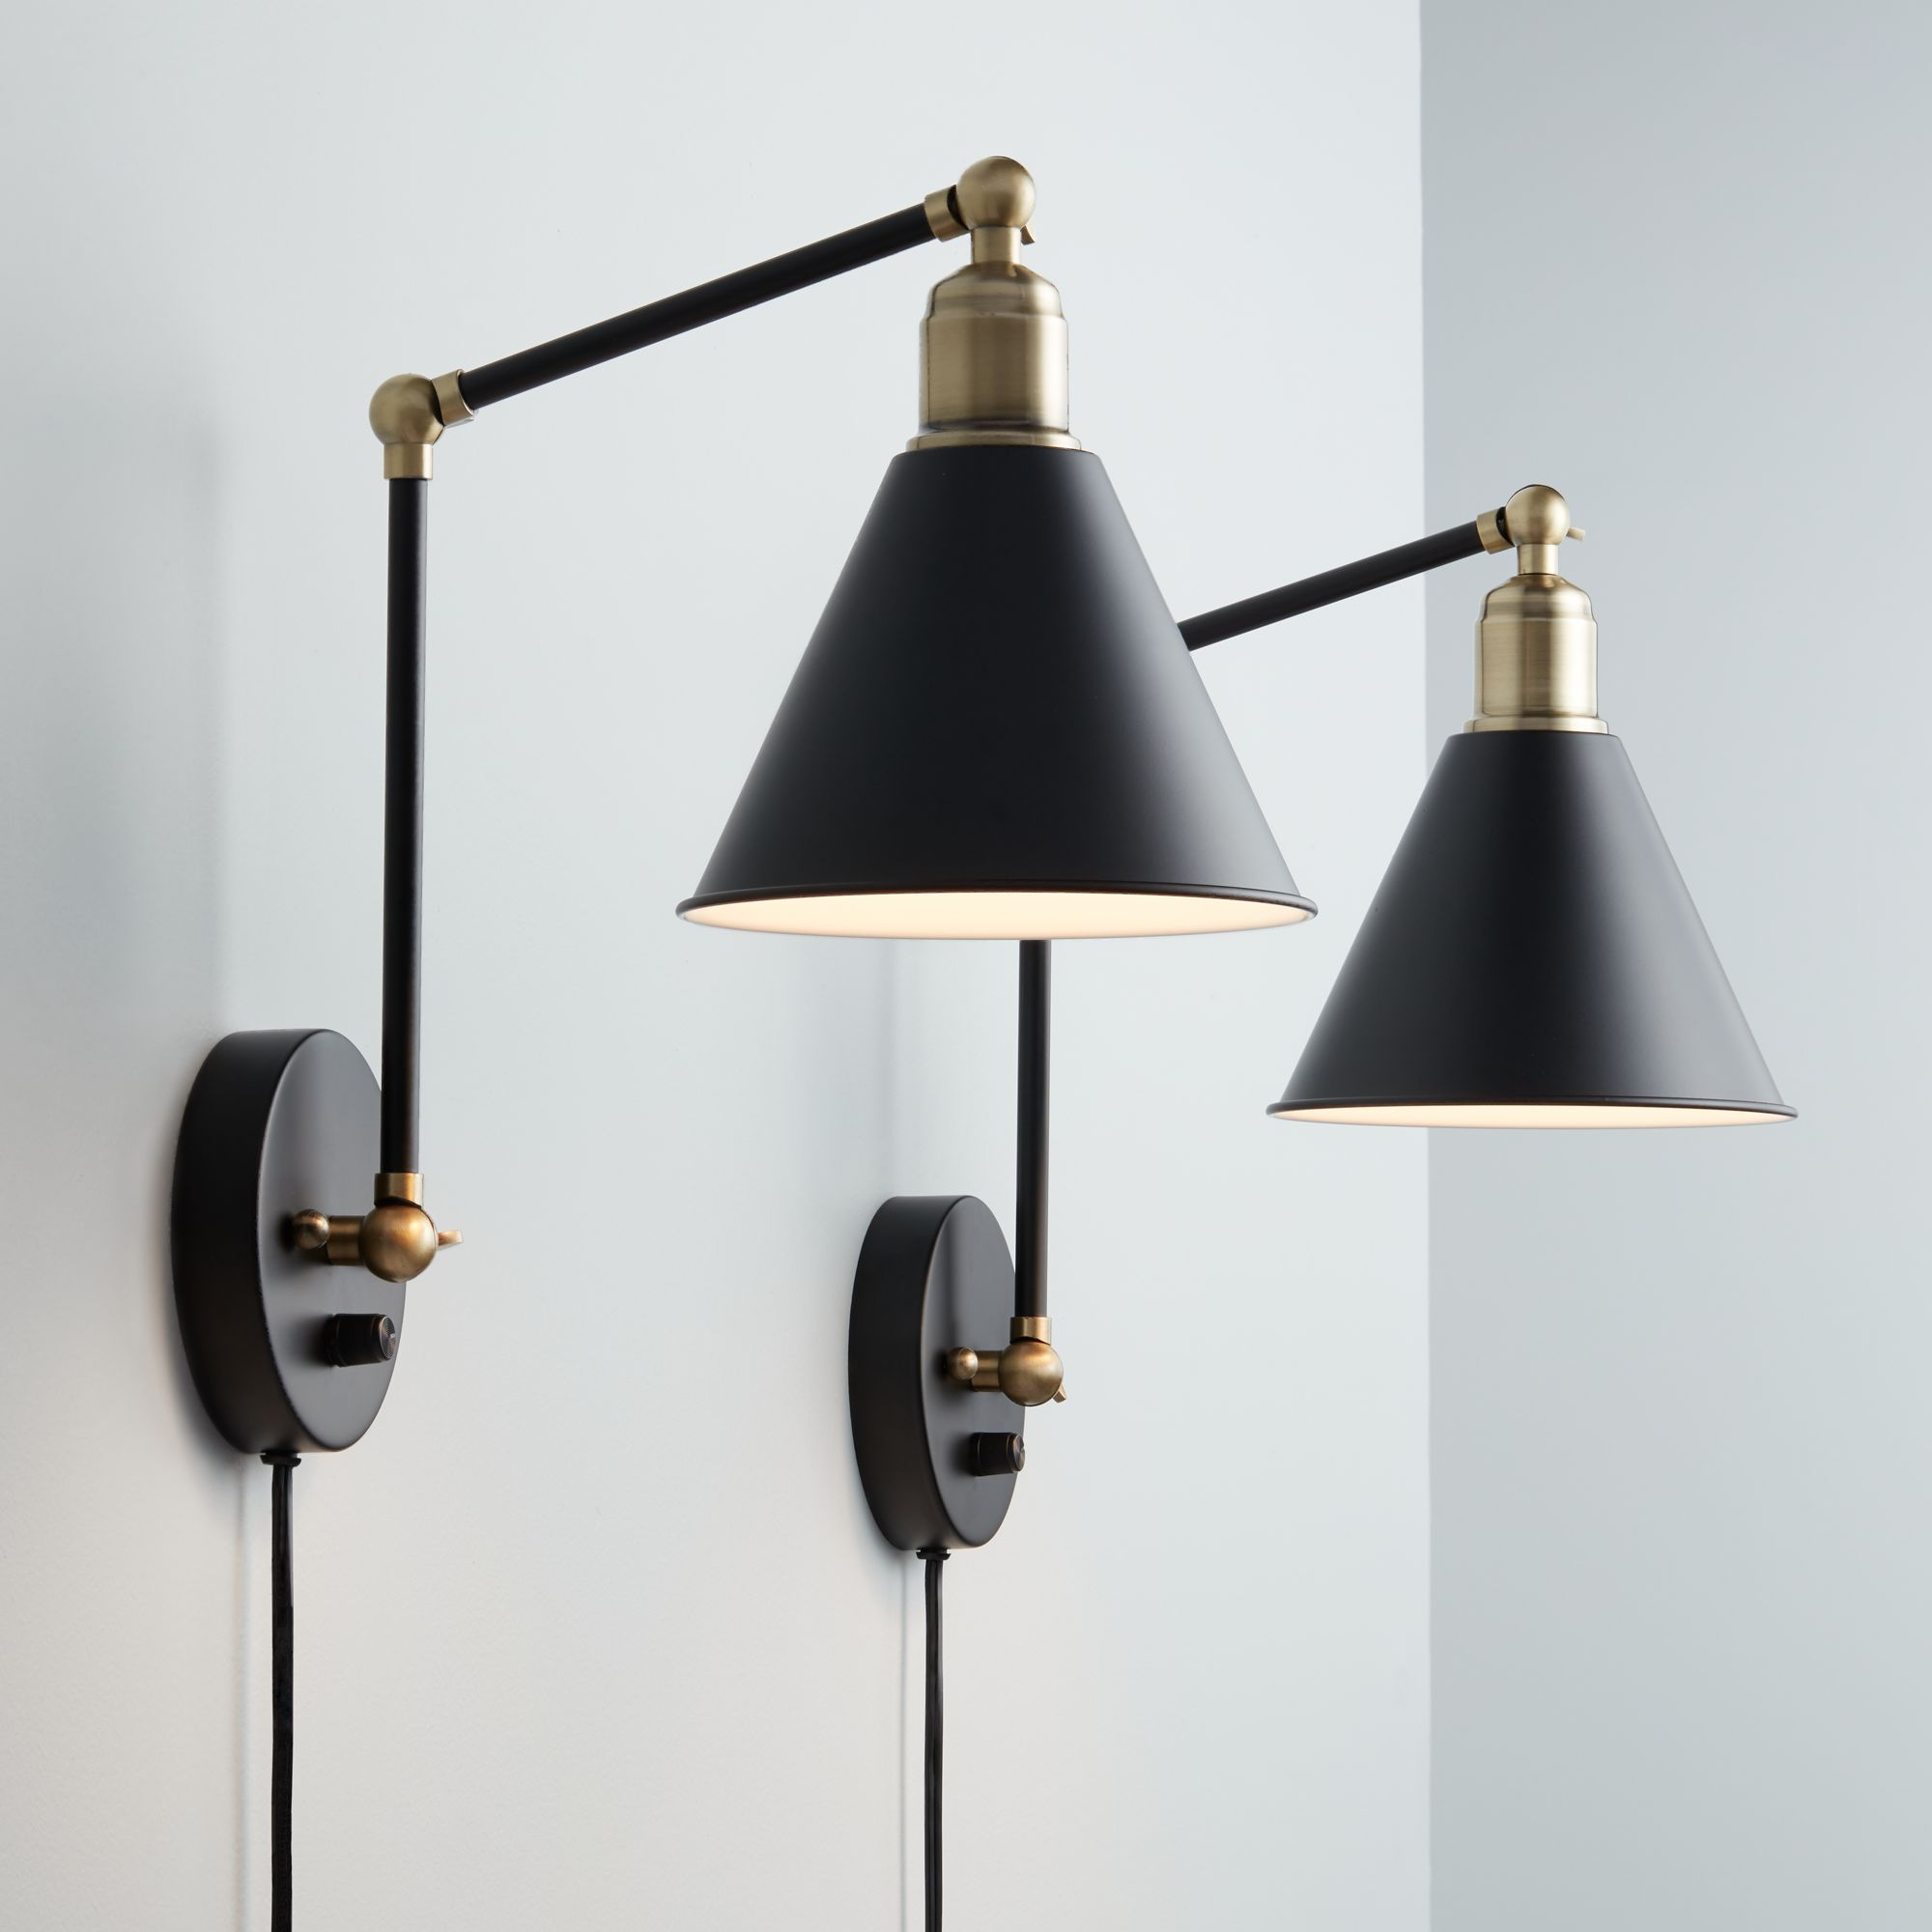 decorative wall lamps wray black and antique brass plug-in wall lamp set of 2 MOPWJXW